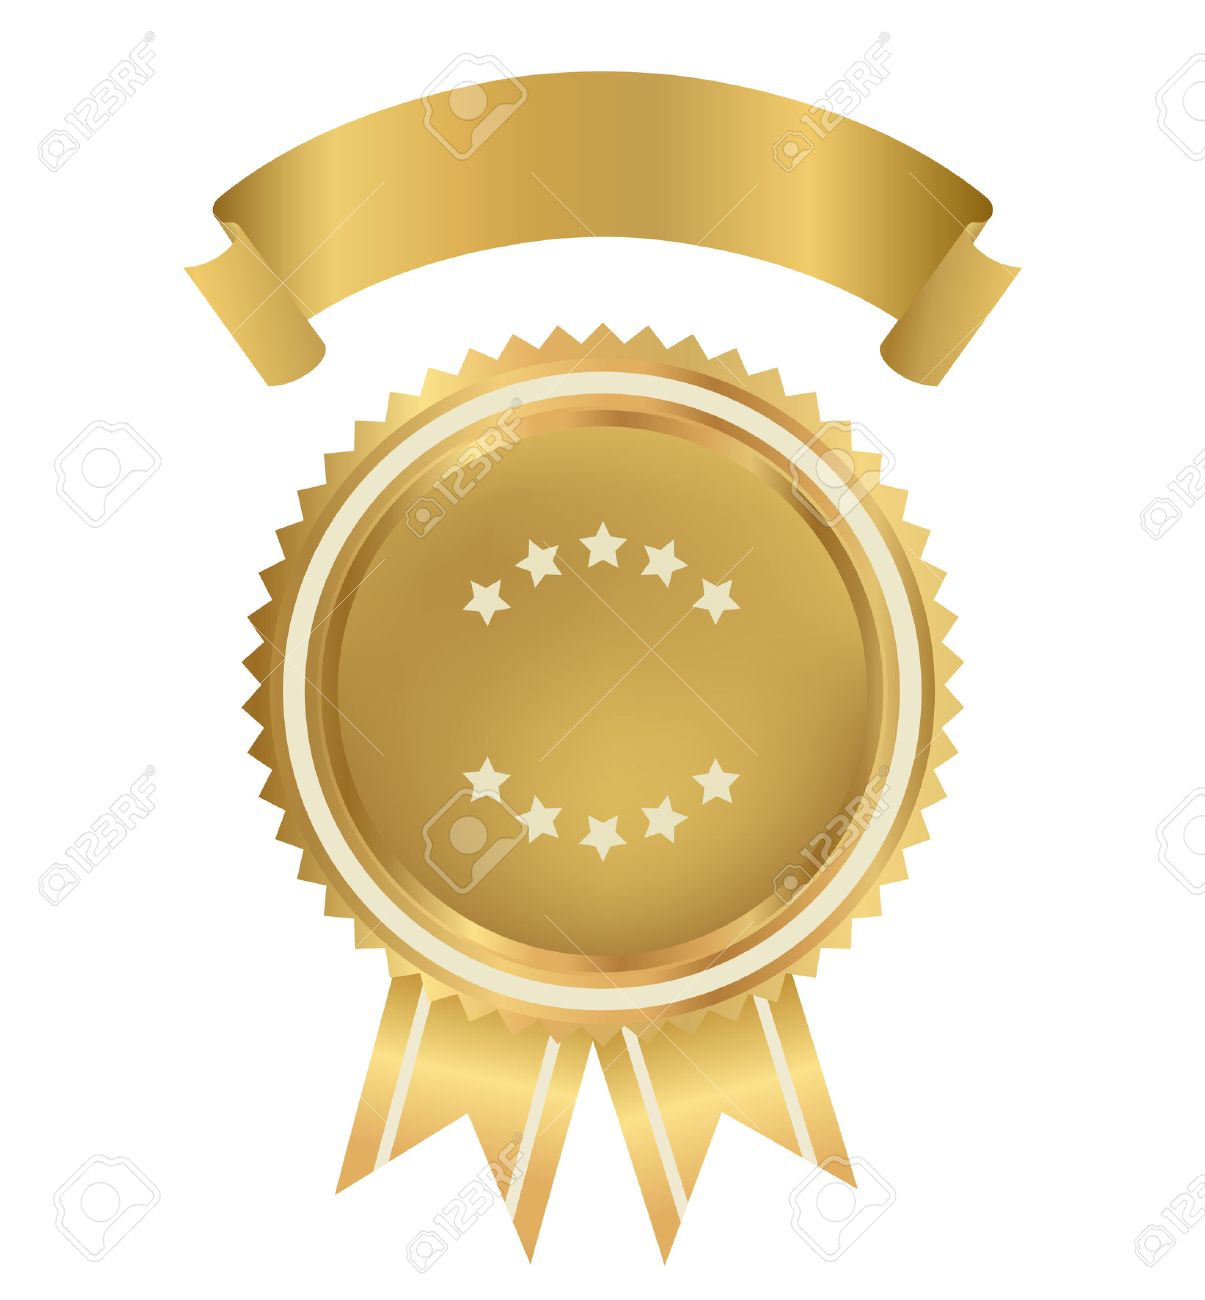 Award, Insignia, Badge for certificate, diploma, web page  Golden medal with gold ribbon  sign of winner   Prize of First  Premium quality, Best price, choice, guarantee, Best seller  Isolated vector Stock Vector - 23459969